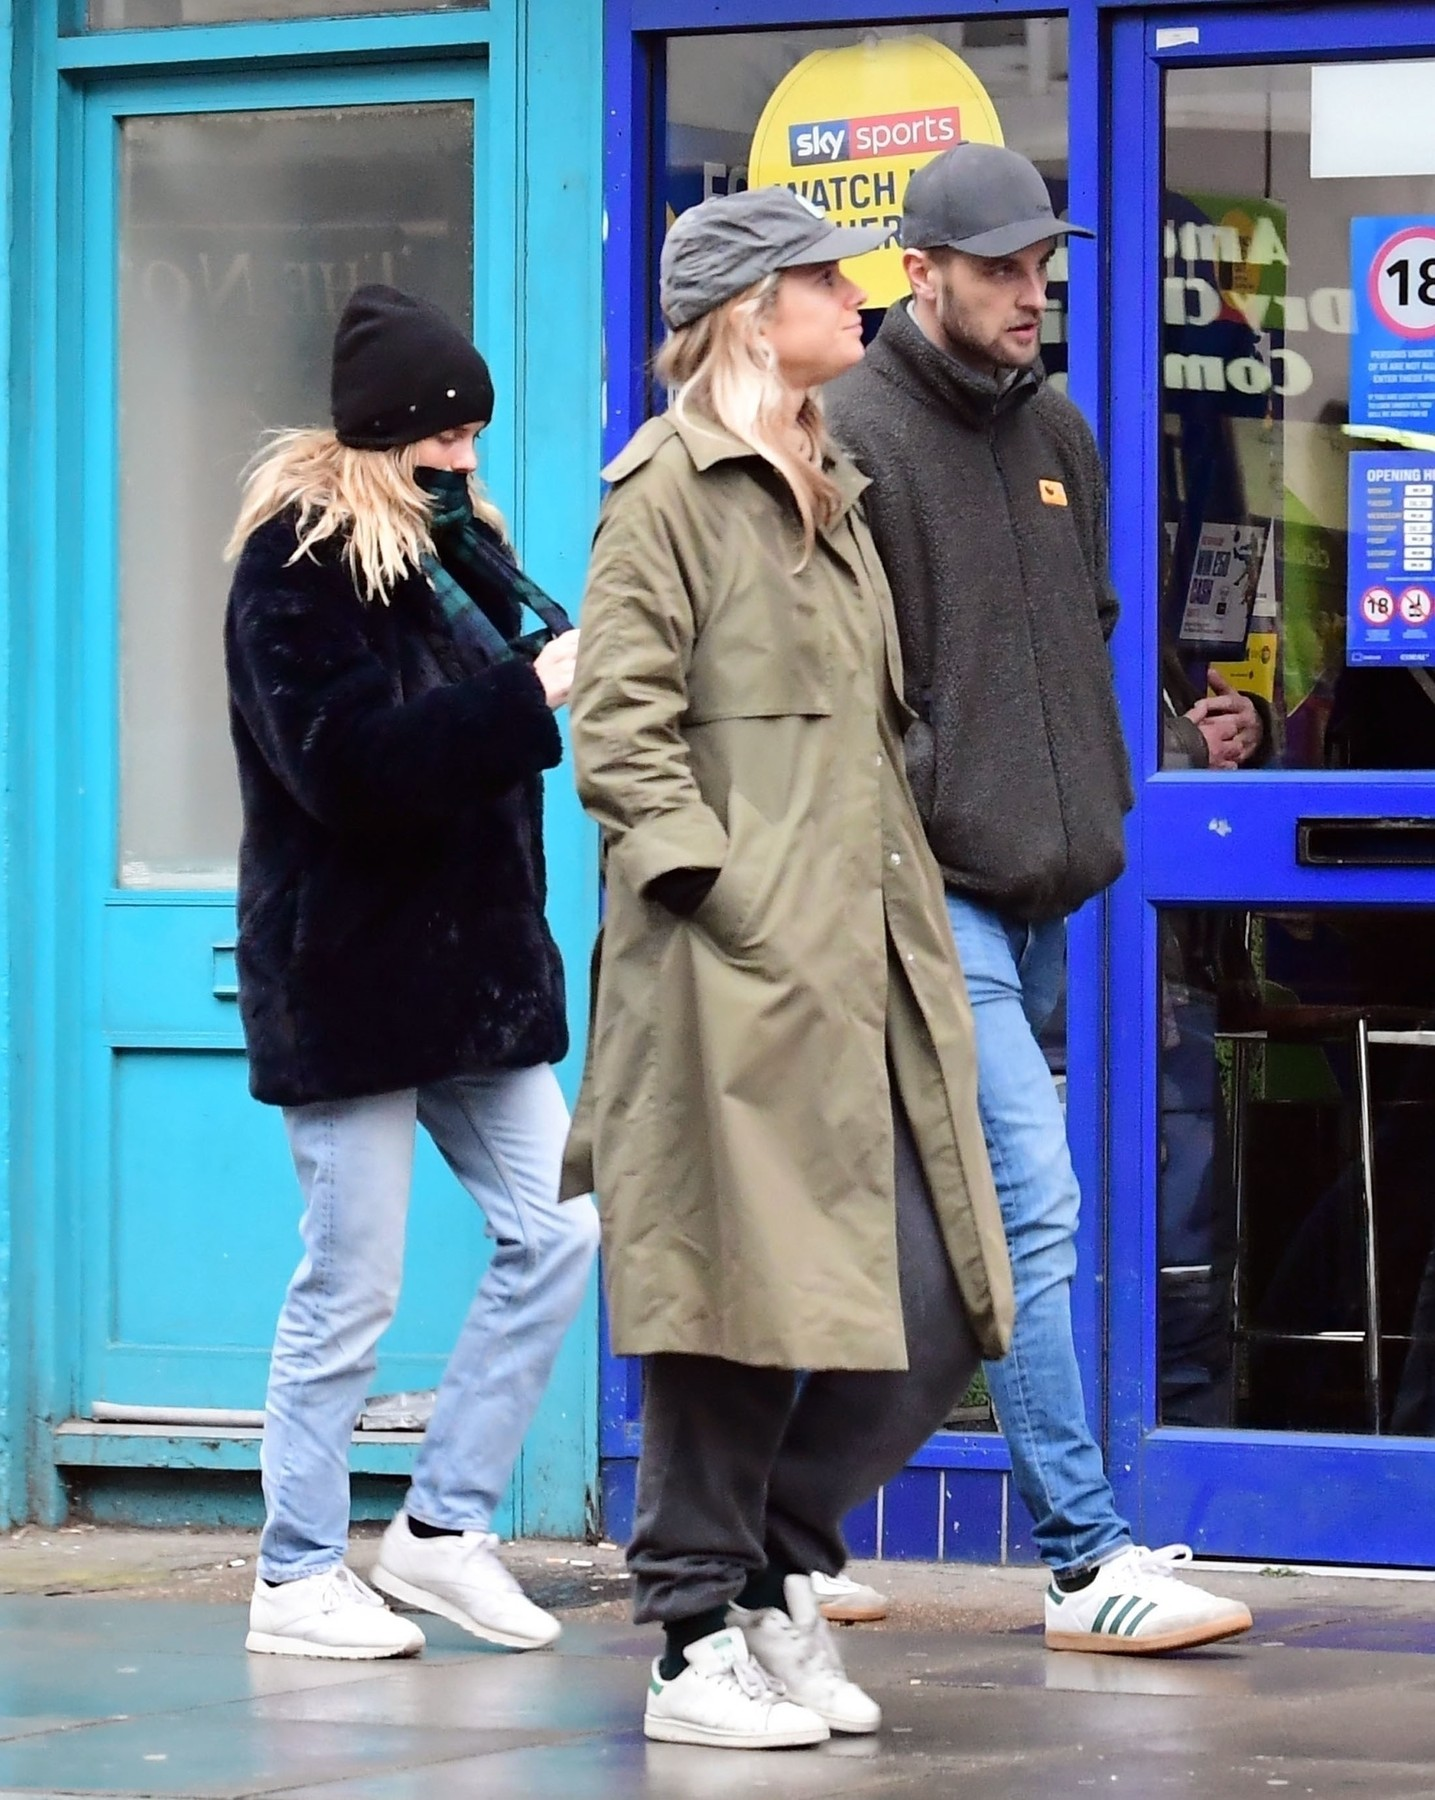 London, UNITED KINGDOM  - *EXCLUSIVE*  - WEB MUST CALL FOR PRICING  - PICTURES TAKEN ON 15/03/2020 -  Prince Harry's ex Cressida Bonas and husband to be Harry Wentworth-Stanley taking a stroll in Notting Hill.  With the threat of Coronavirus (COVID-19) gripping the UK, the couple were spotted out with a friend and for most of the time keeping a little social distance between themselves amidst the fear of the deadly virus.  Also, in keeping with Government policy during these difficult times, Cressida and Harry say their goodbyes to their friend in keeping with the current fashion by elbow bumping.  BACKGRID UK 17 MARCH 2020,Image: 507228697, License: Rights-managed, Restrictions: , Model Release: no